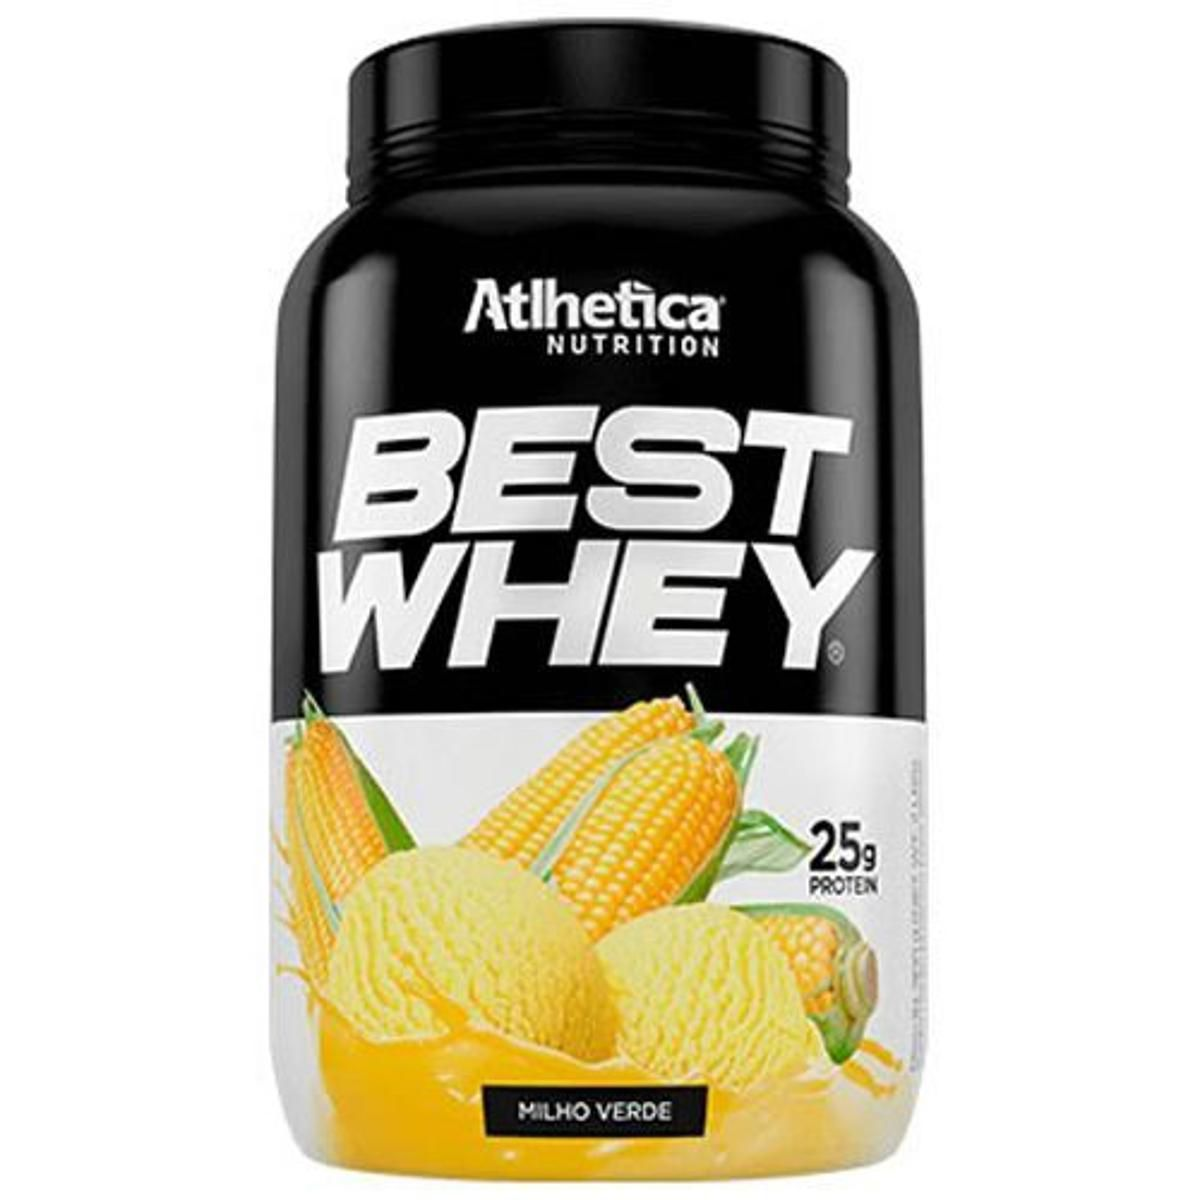 kit 2 best whey - 900gr - Sabores - Athetica Nutrition